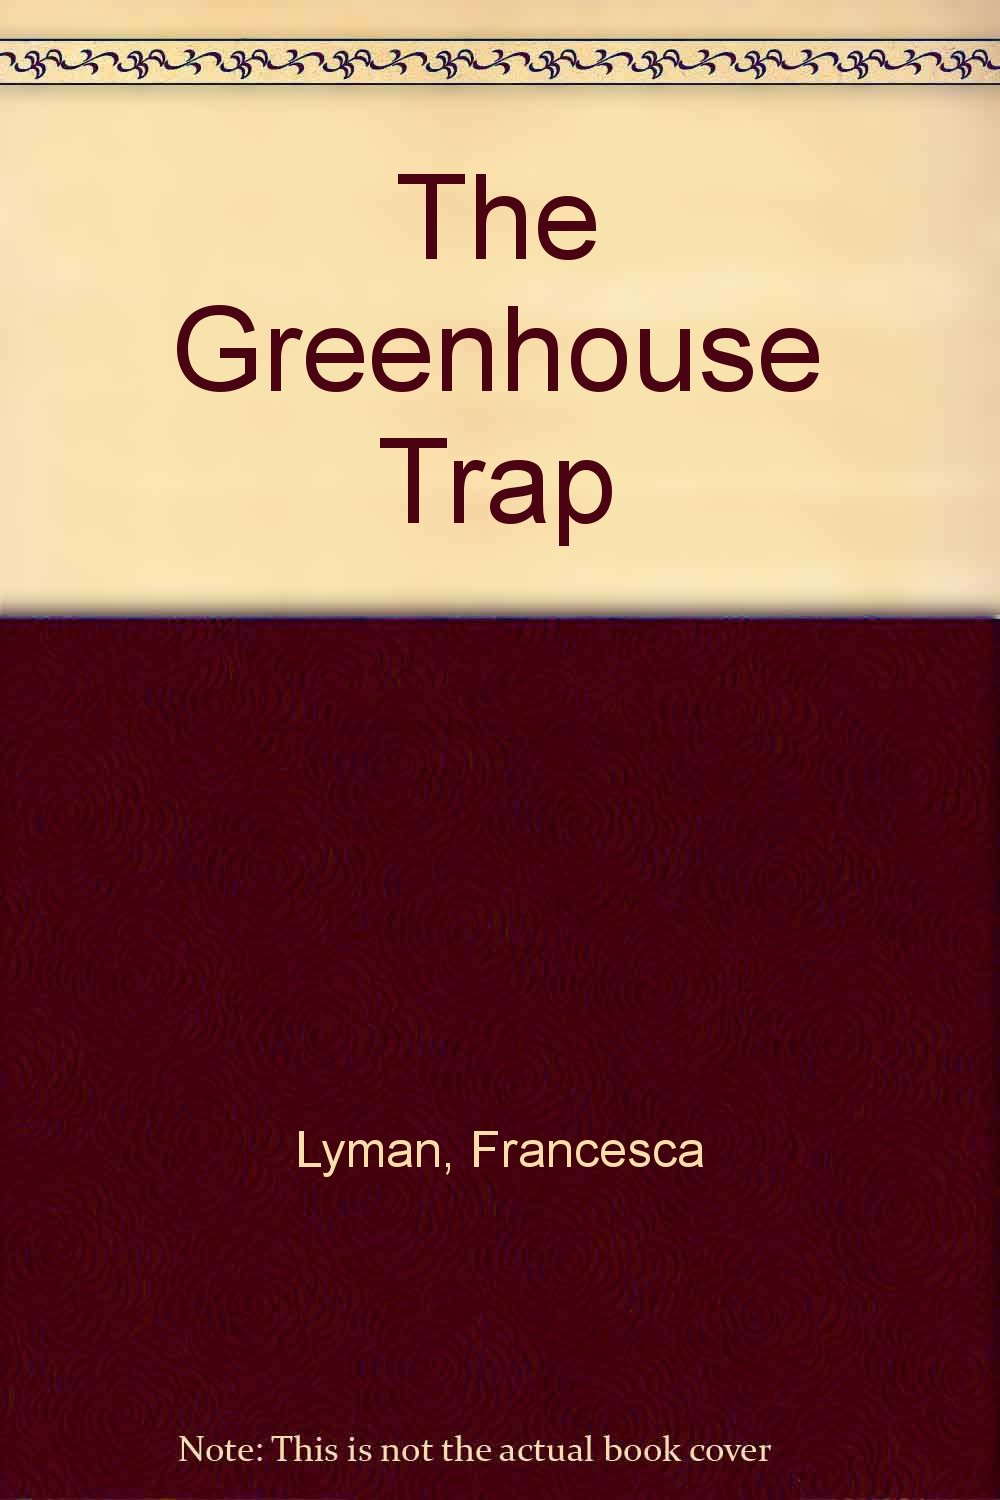 The Greenhouse Trap